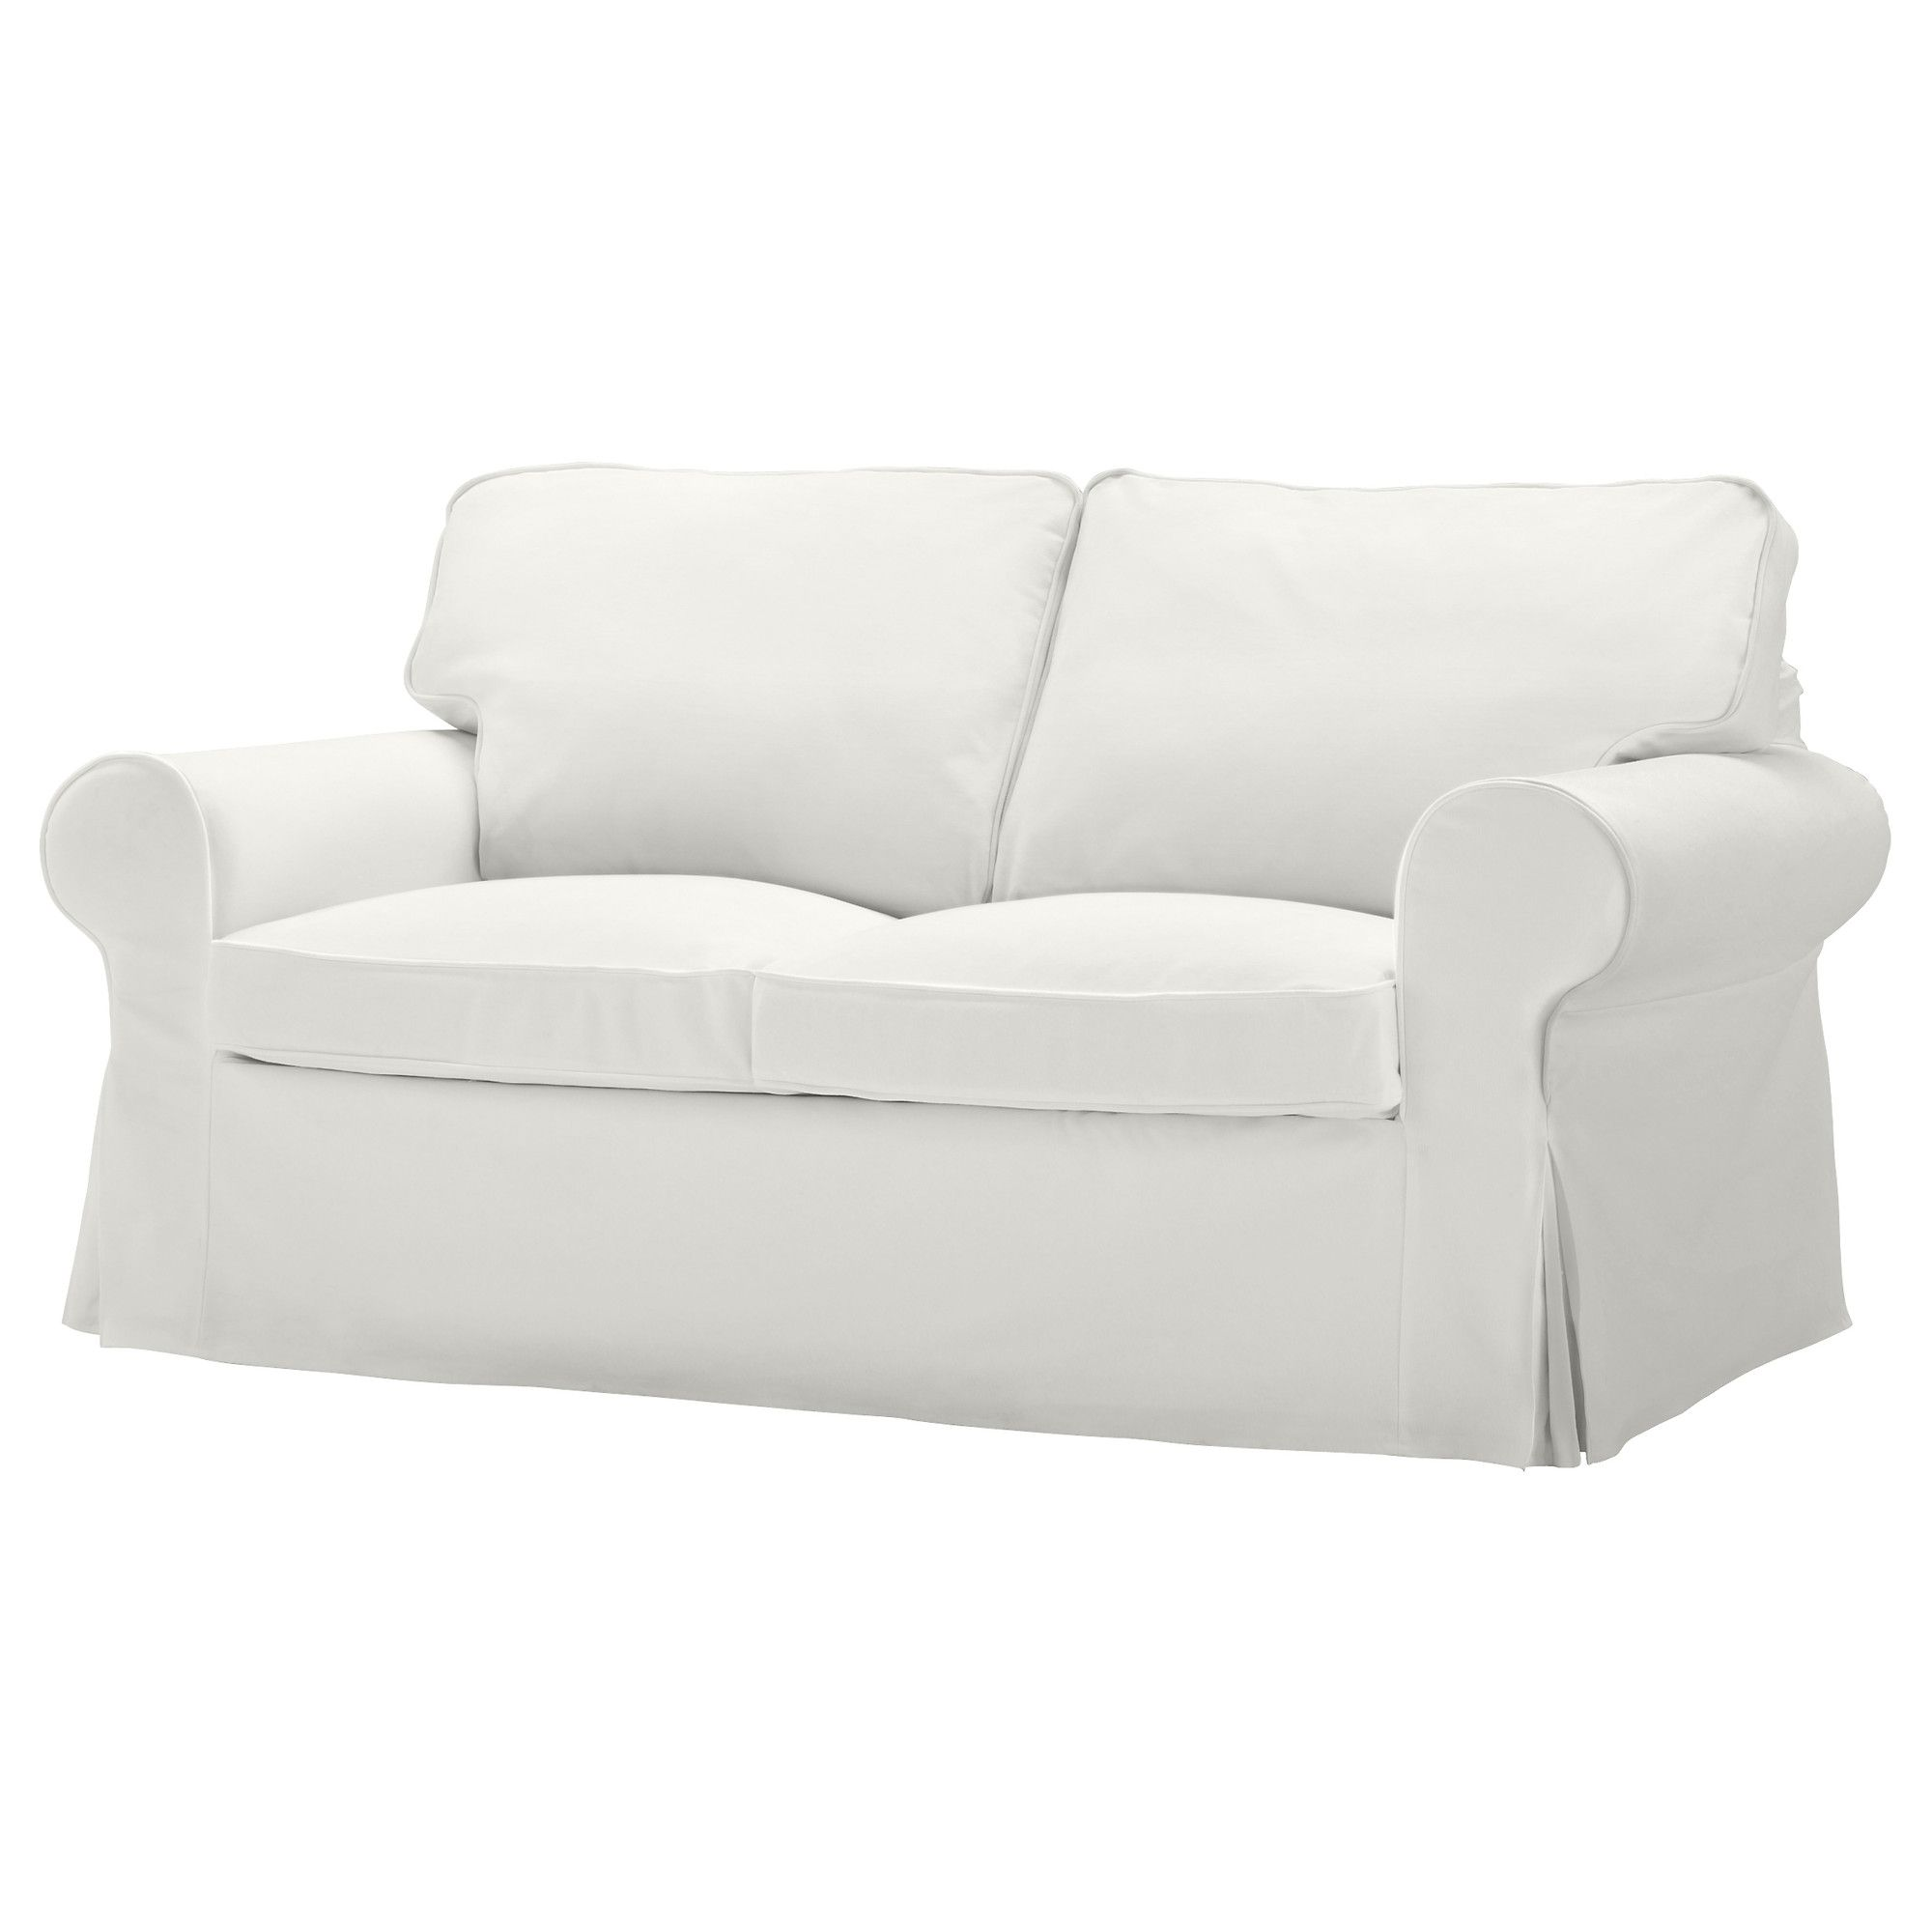 rp sofa dimensions kerber tennis sofascore white slipcovered sleeper ikea